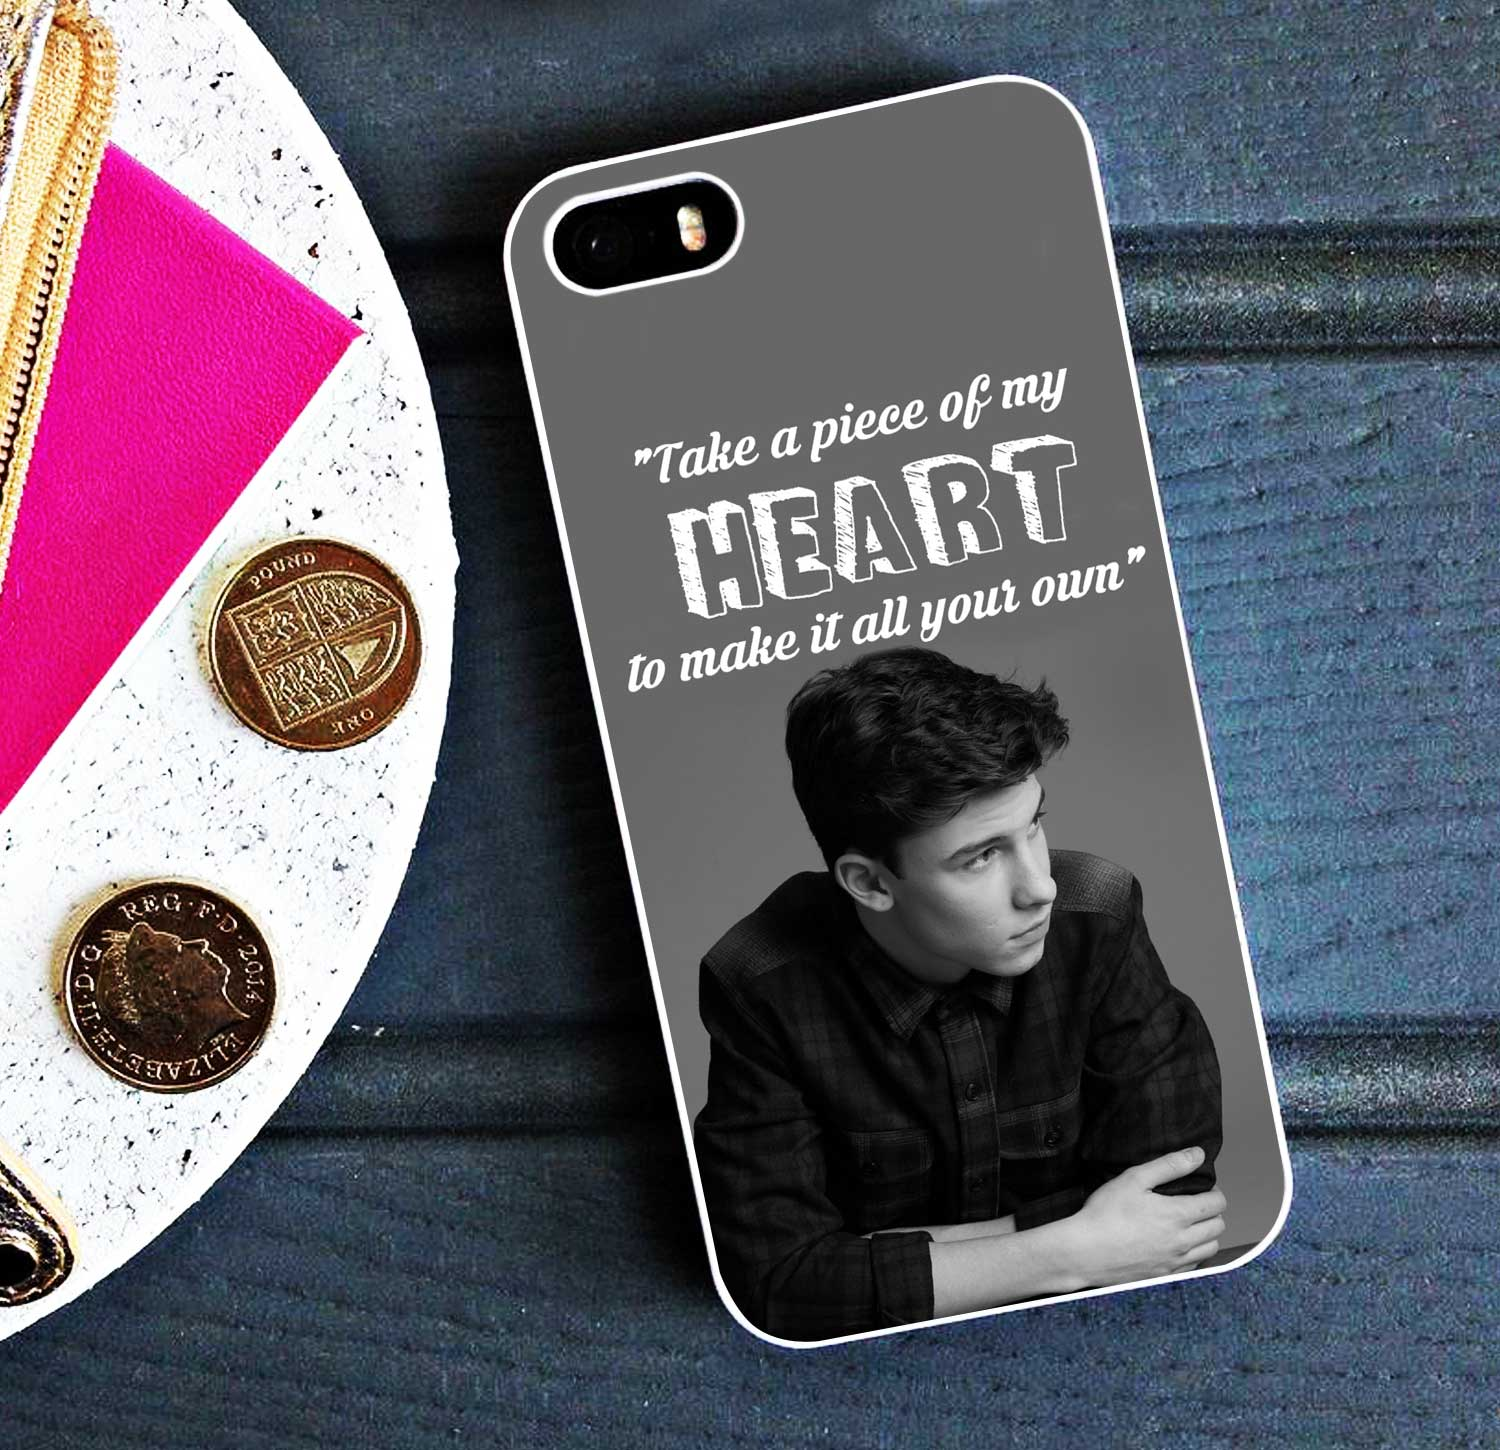 new product 6aece 17426 Shawn Mendes Stitches - Magcon Case -i Phone Case // iPhone 6s / 6 plus /  6/5/4 Samsung Galaxy s6// iPod from FushionShop